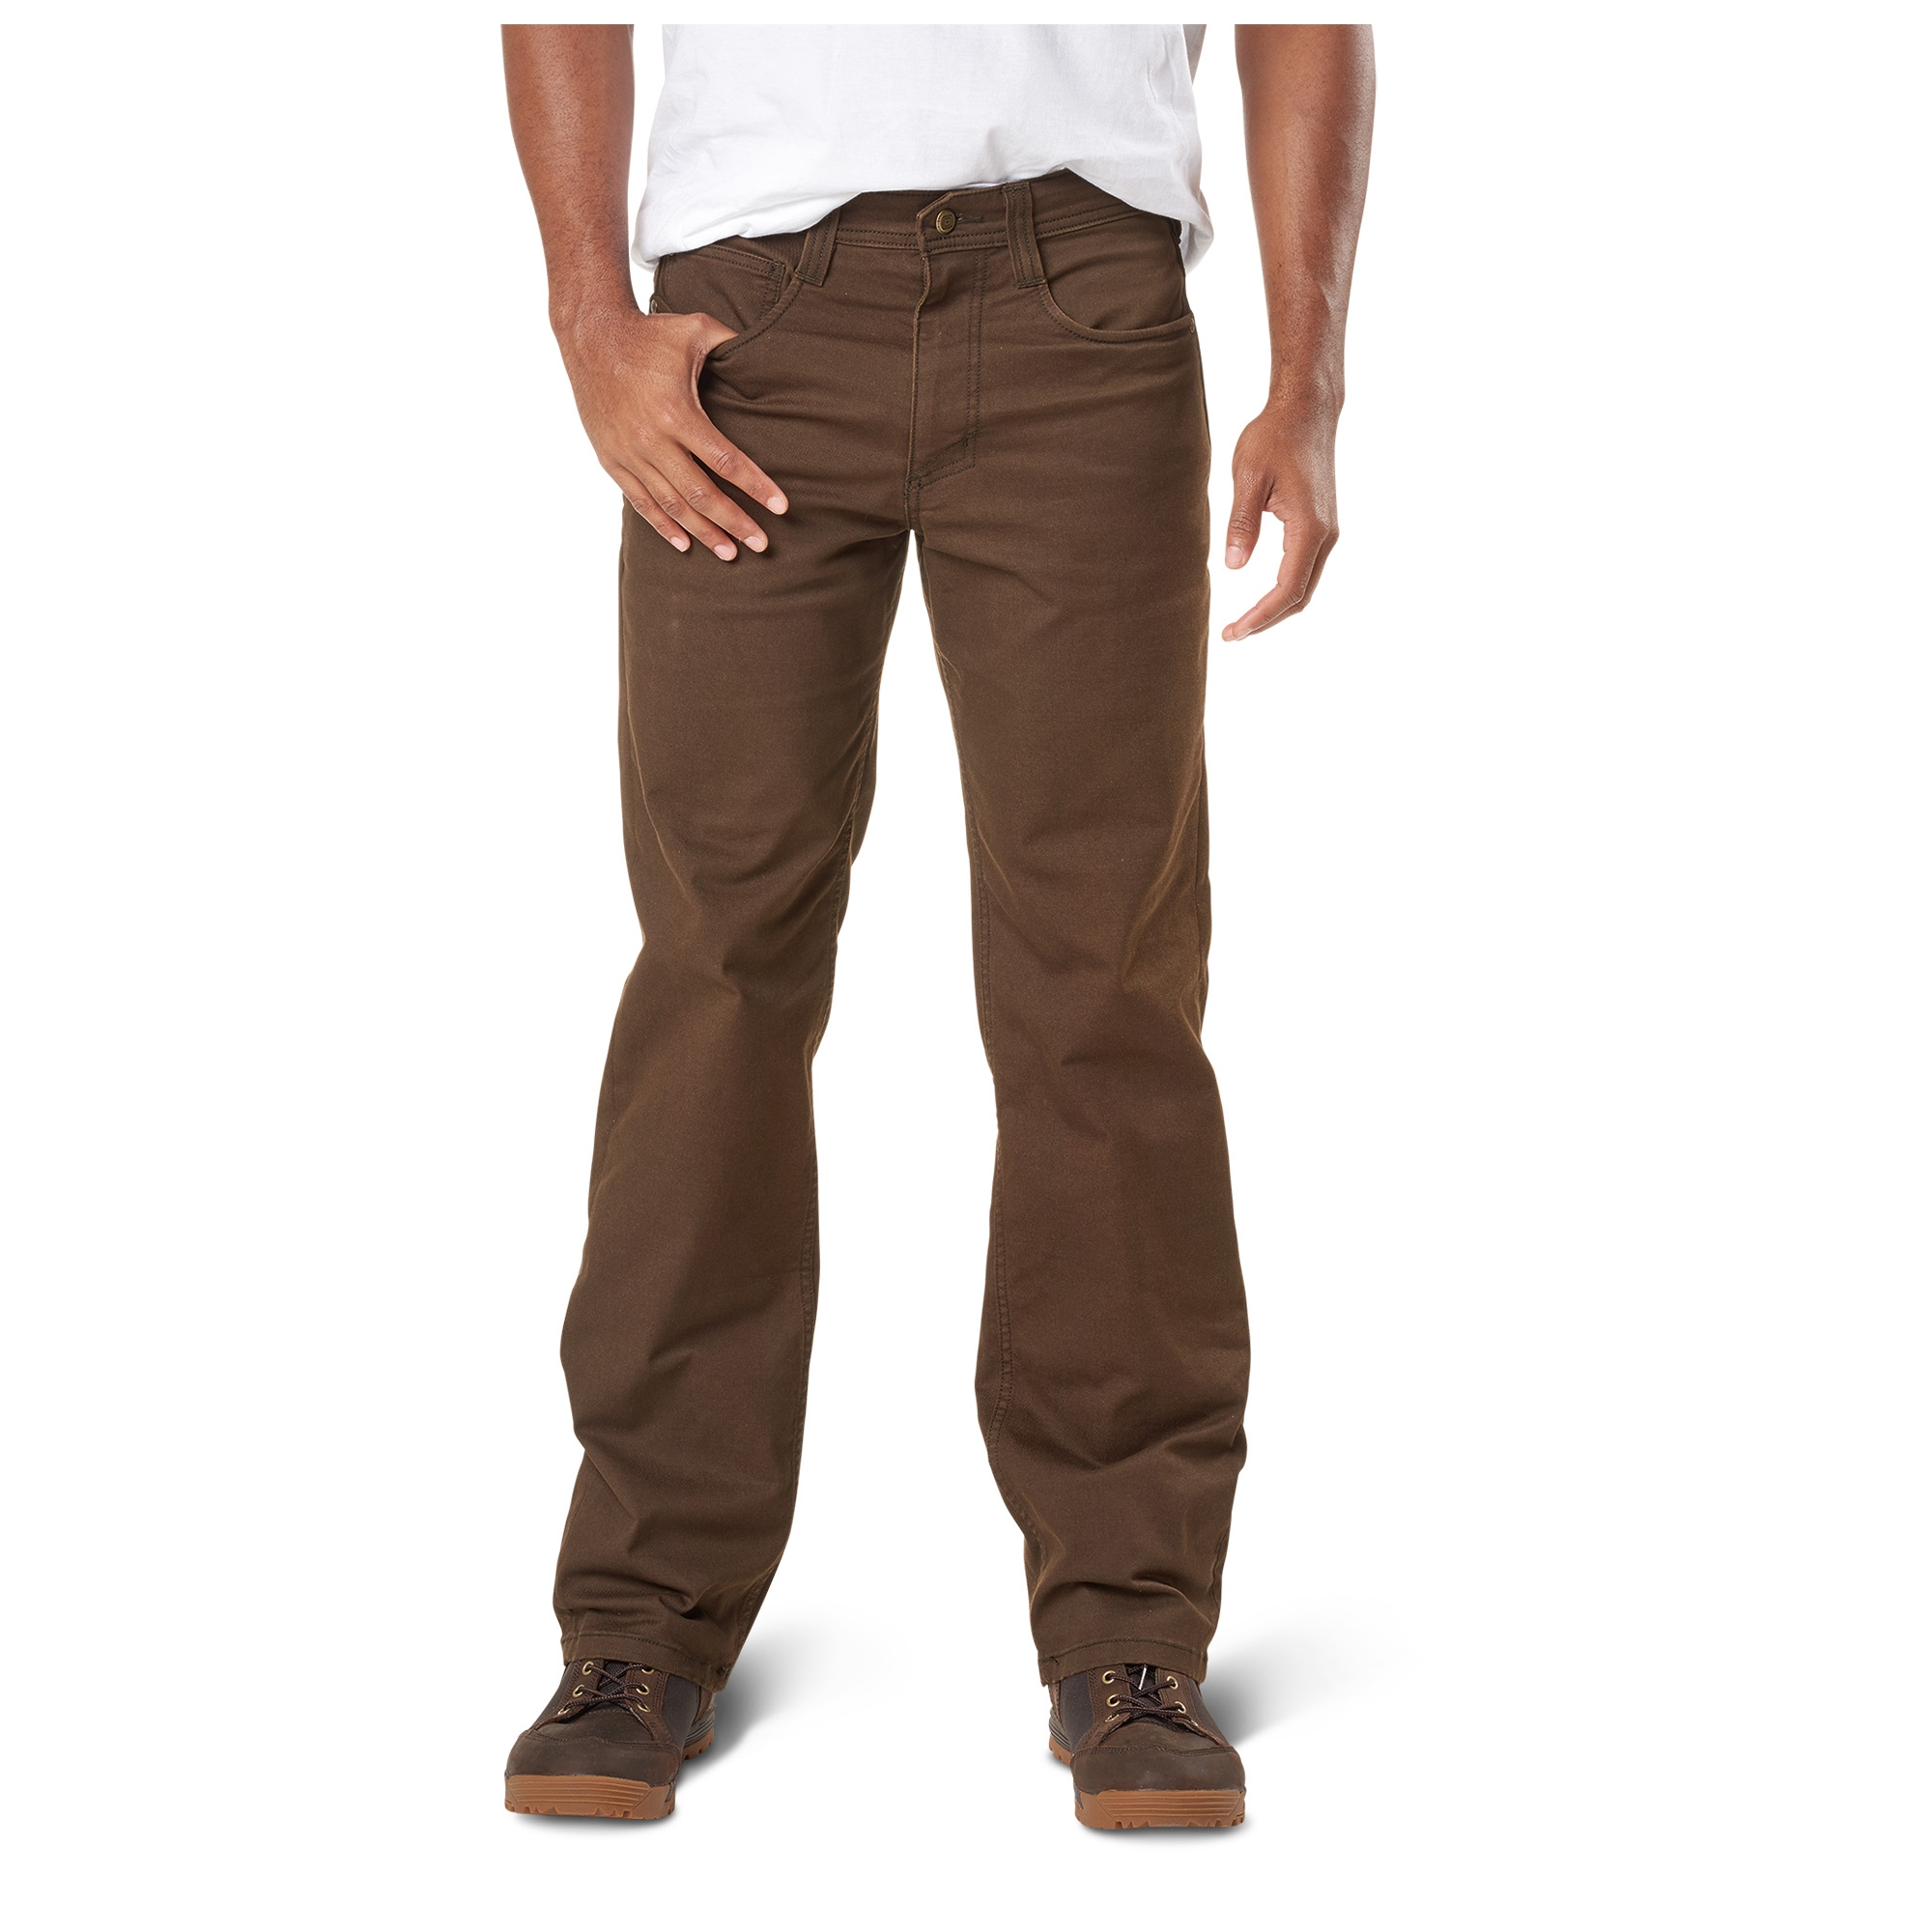 image of defender flex straight pant with sku888579141726